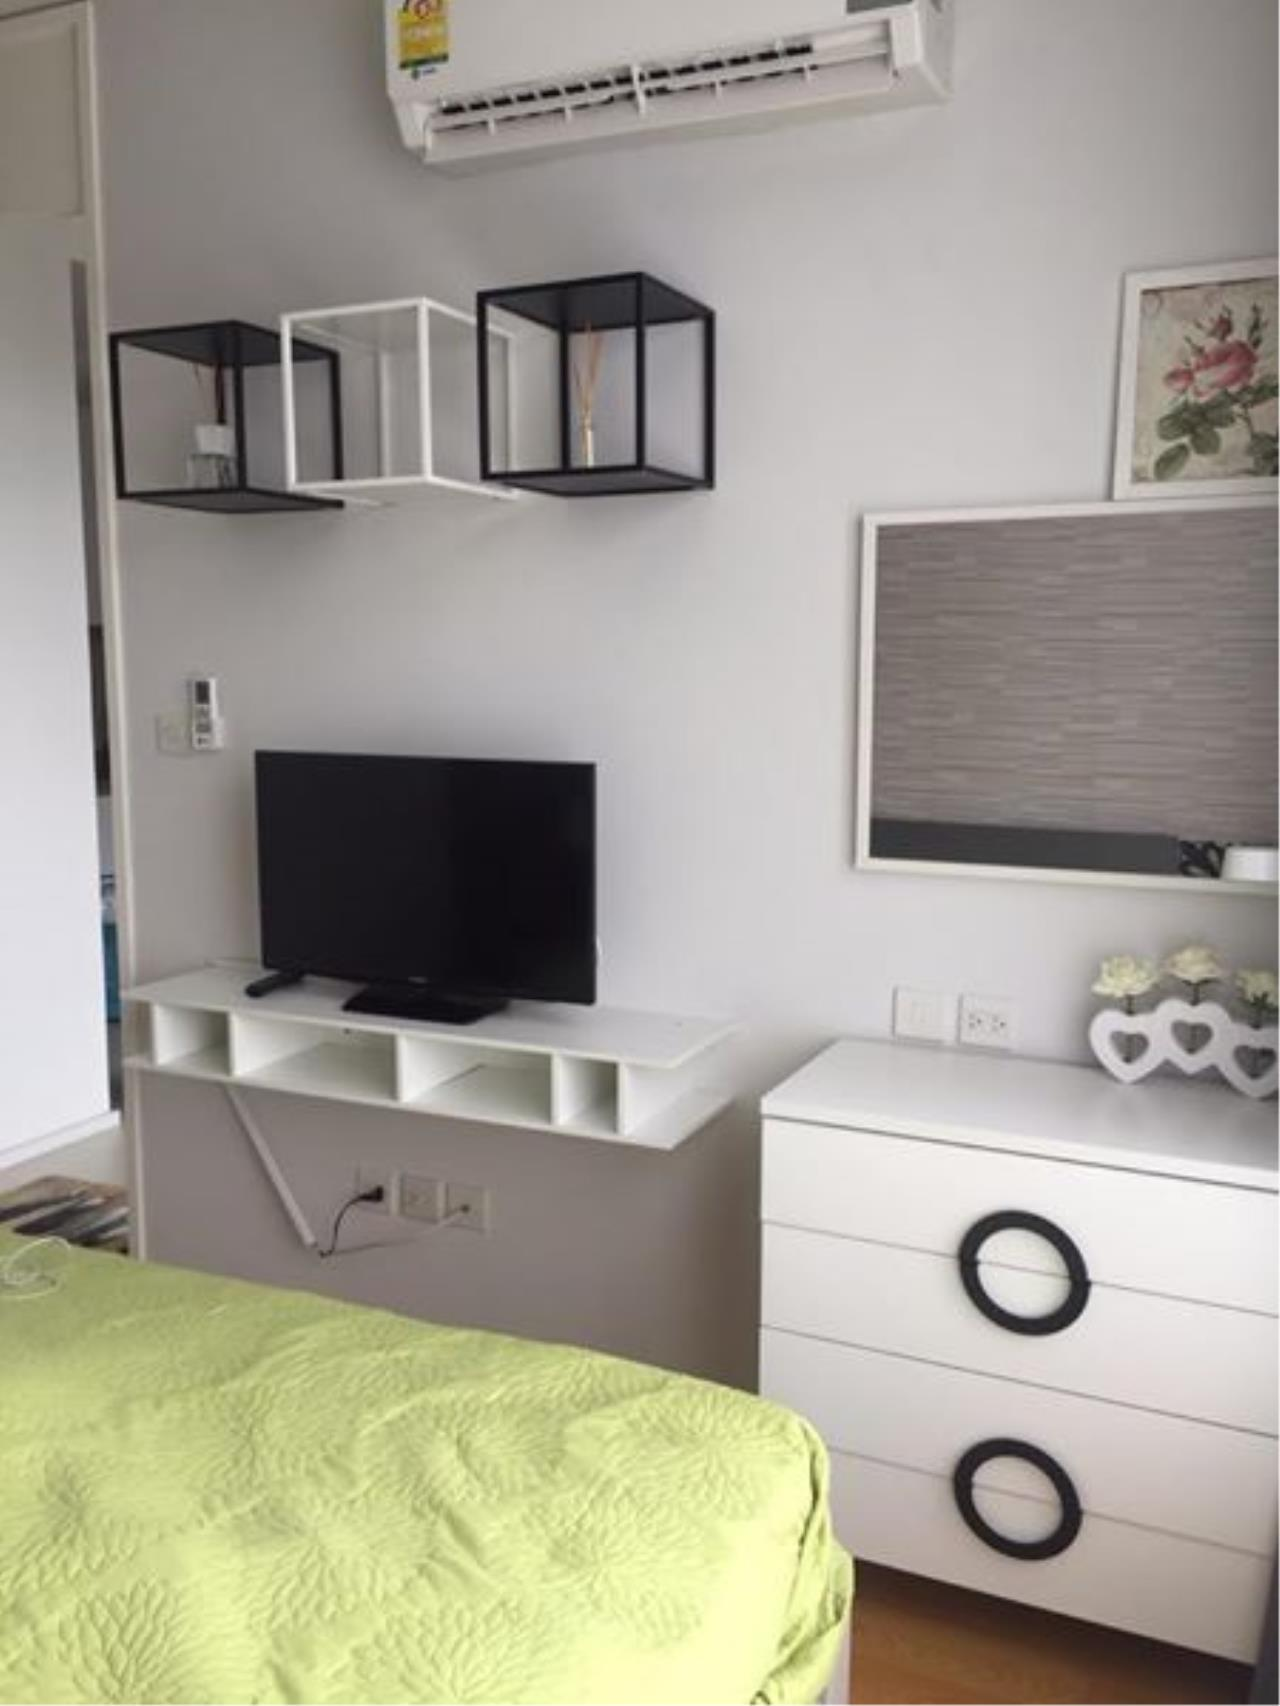 Agent - Thitiporn Sriboola Agency's M Condo Ladprao, condo high rise for rent, 300 meters to ladprao mrt station bangkok 3